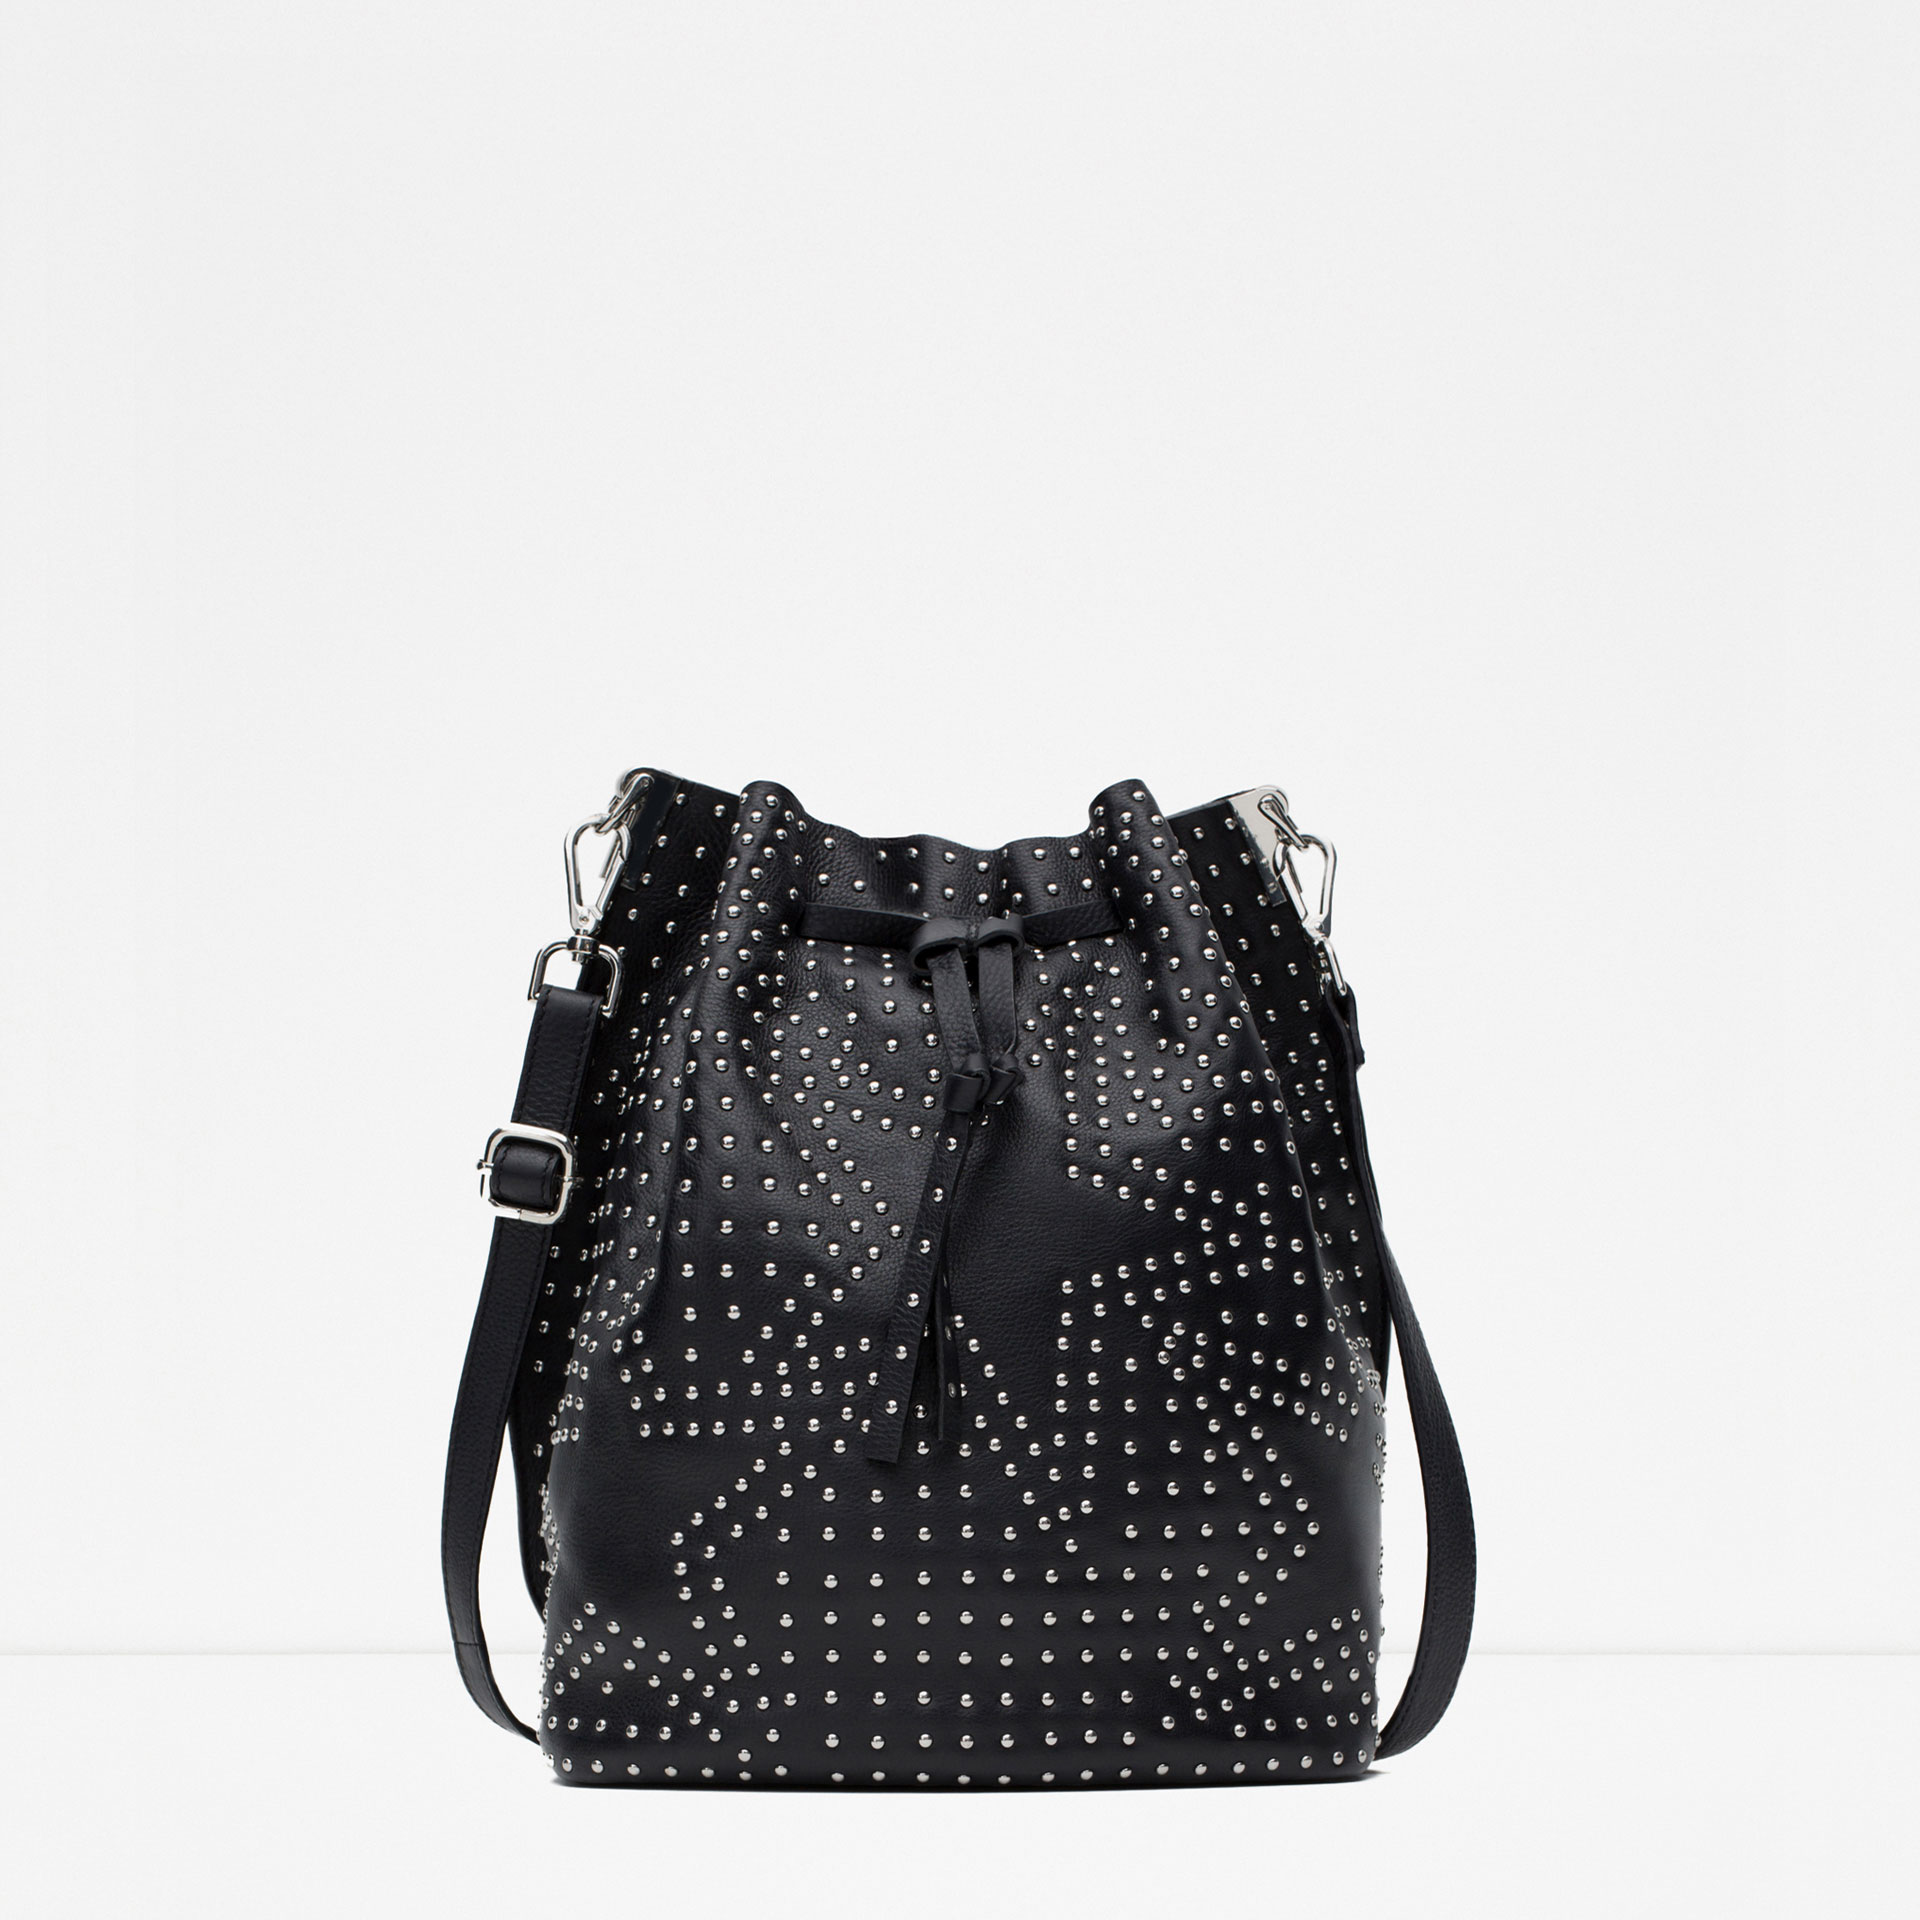 I have been on the hunt for a new bag for ages.  This may not be the answer to all my handbag prayers but I'm pretty in love with it.  Studs and stars...well done,  Zara .